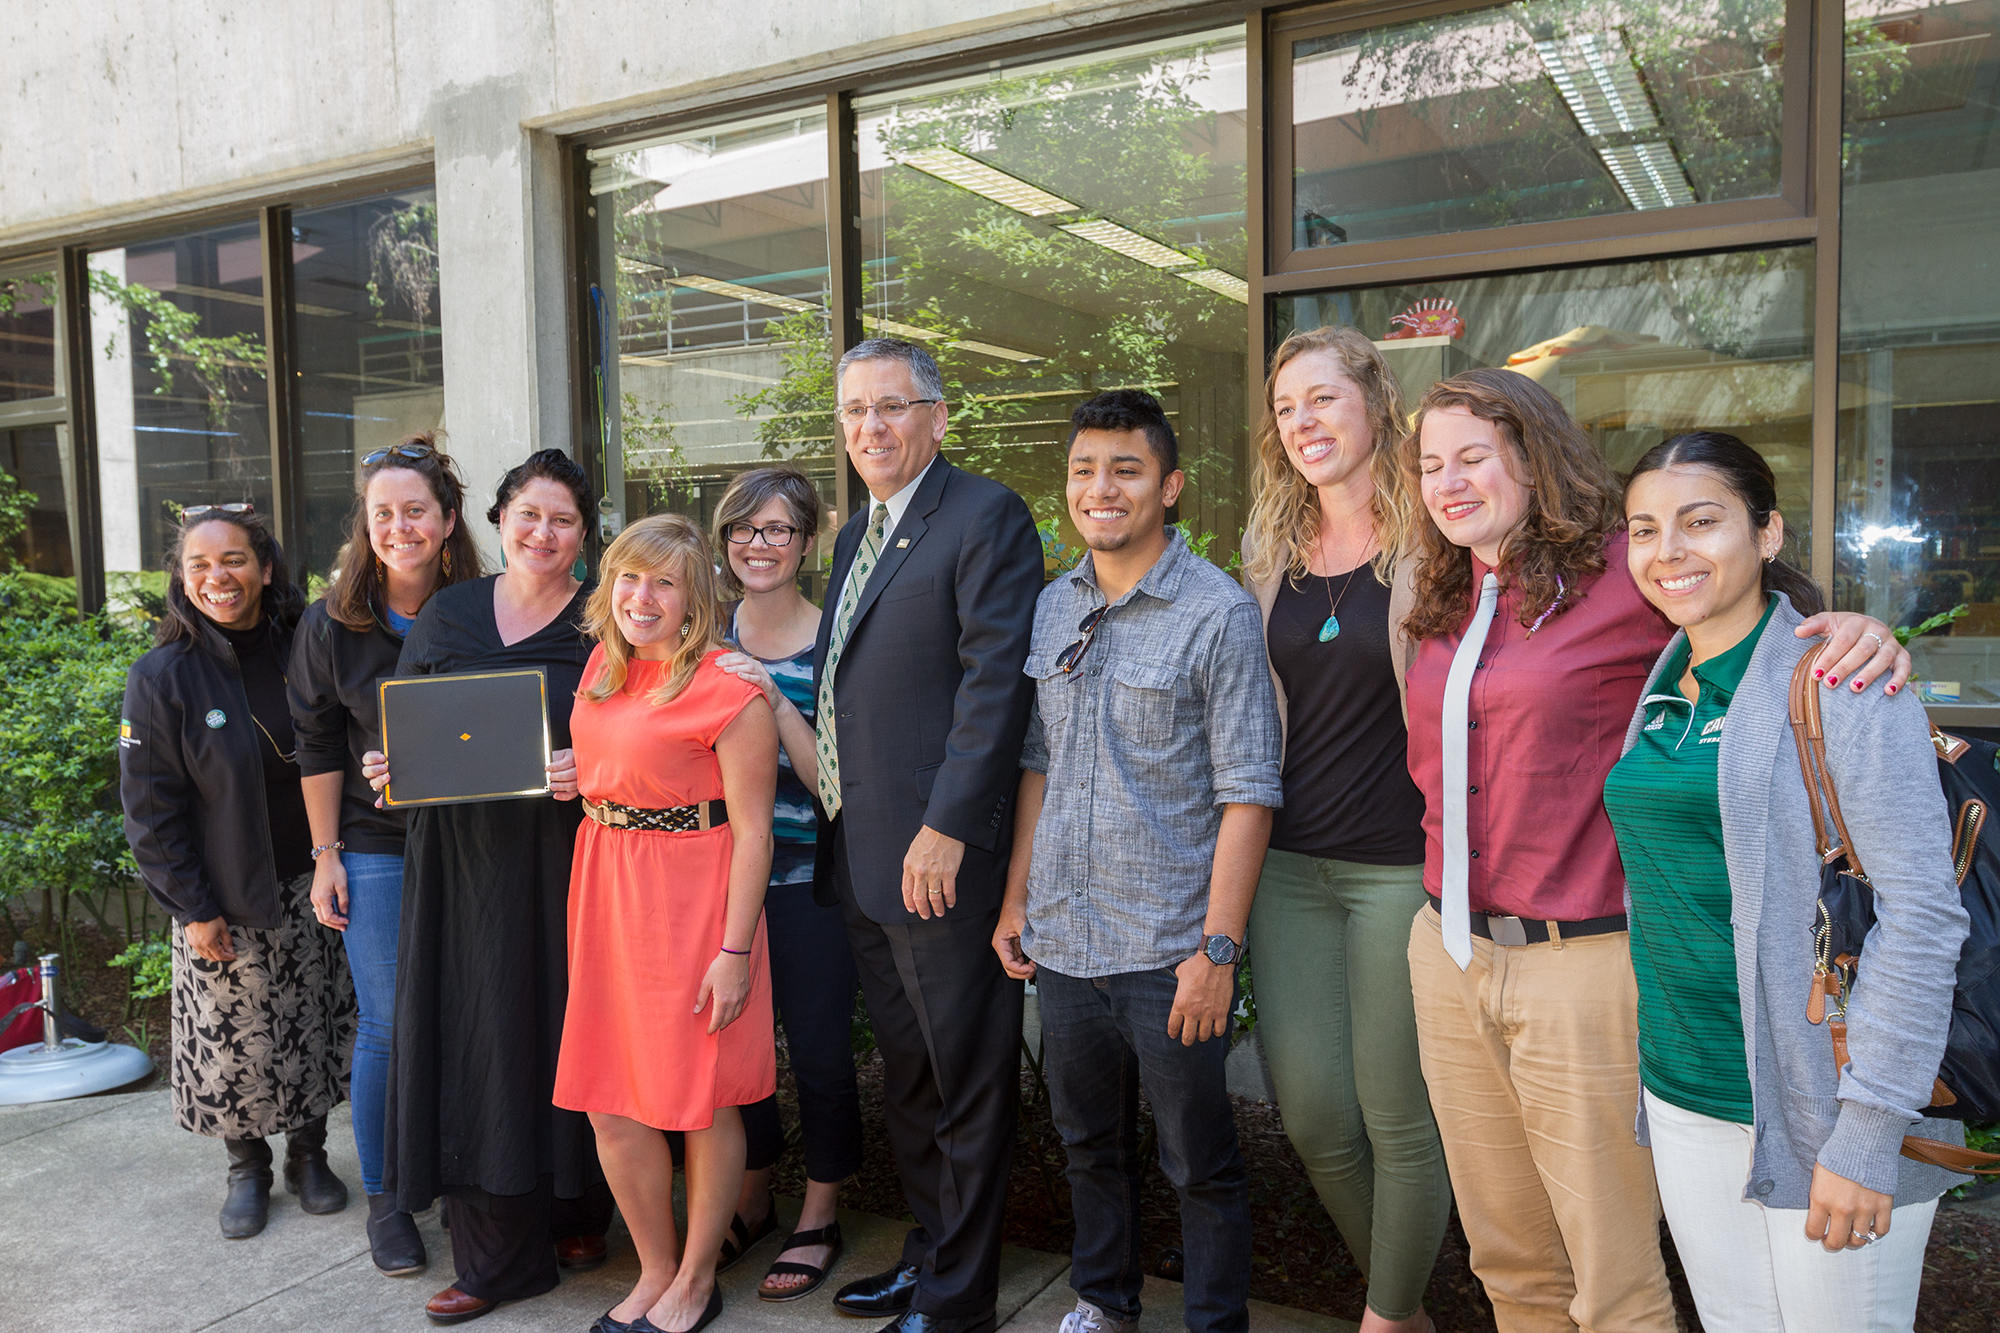 President Armstrong and the diversity award winners stood and smiled together in the library atrium.